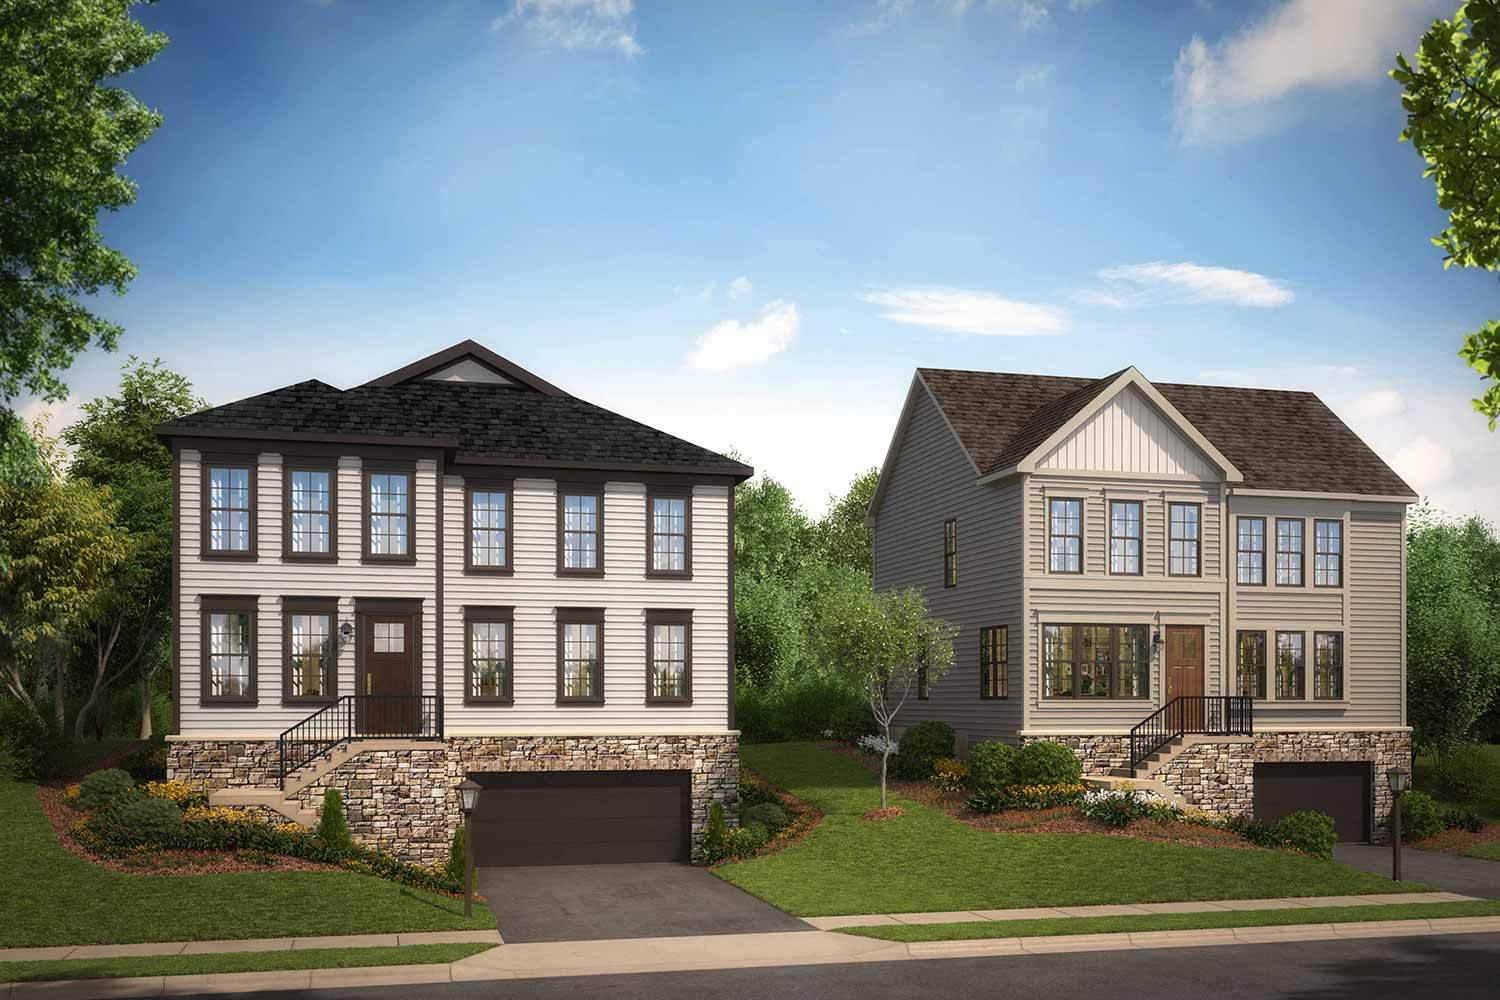 6801 Pax Court, New Market, MD Homes & Land - Real Estate